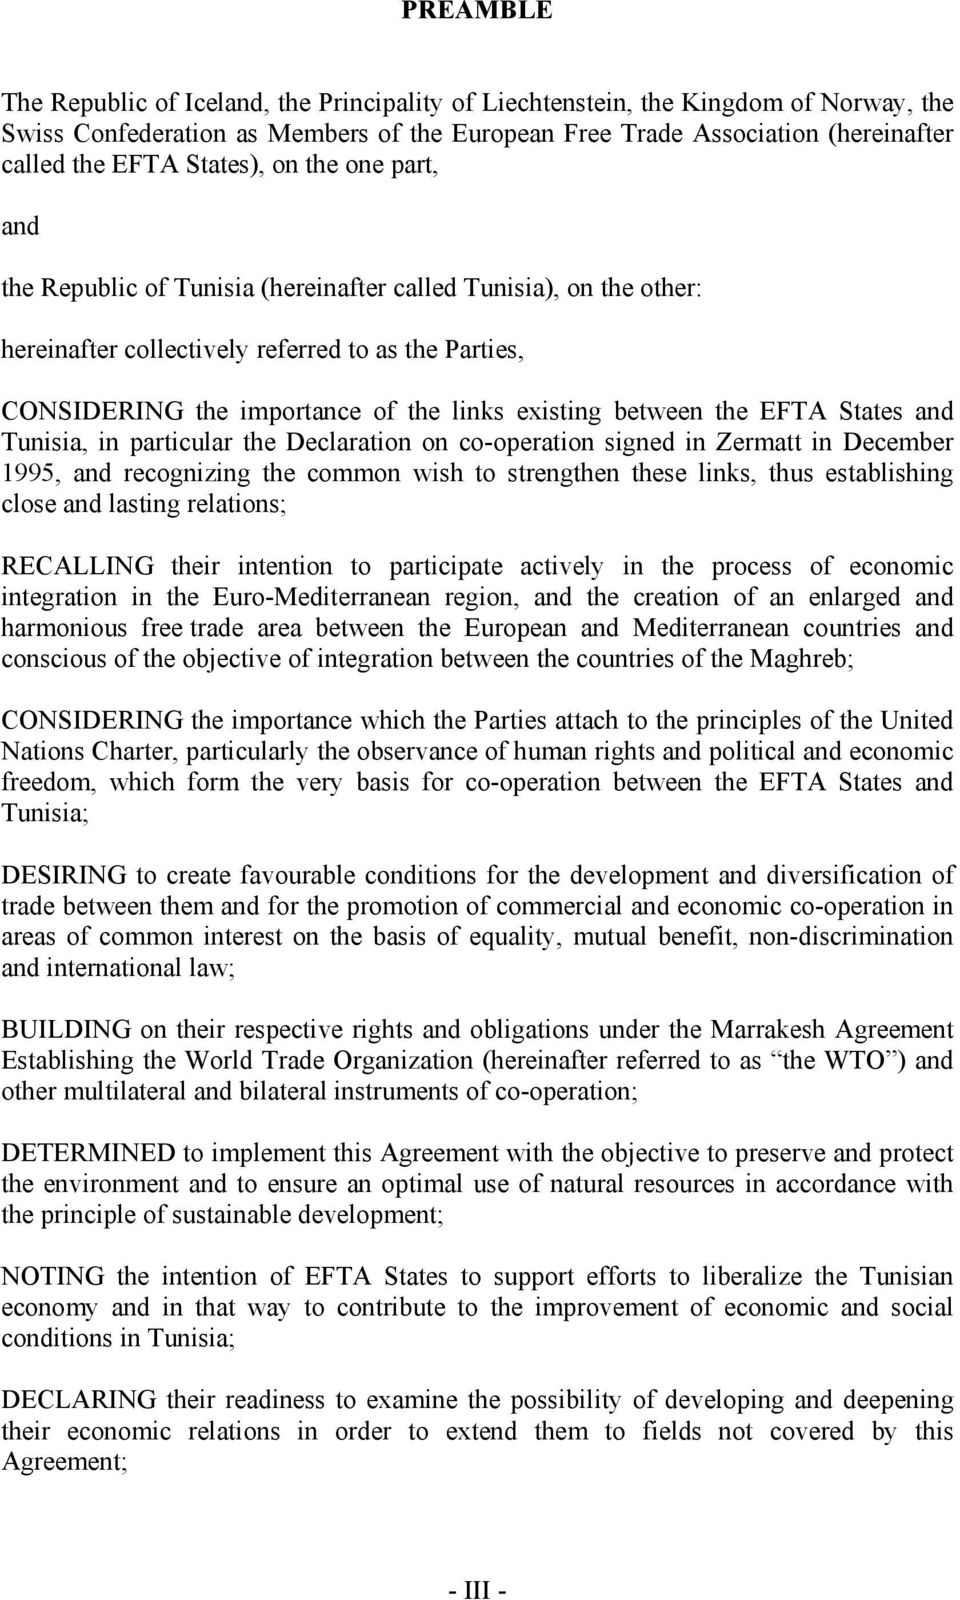 between the EFTA States and Tunisia, in particular the Declaration on co-operation signed in Zermatt in December 1995, and recognizing the common wish to strengthen these links, thus establishing